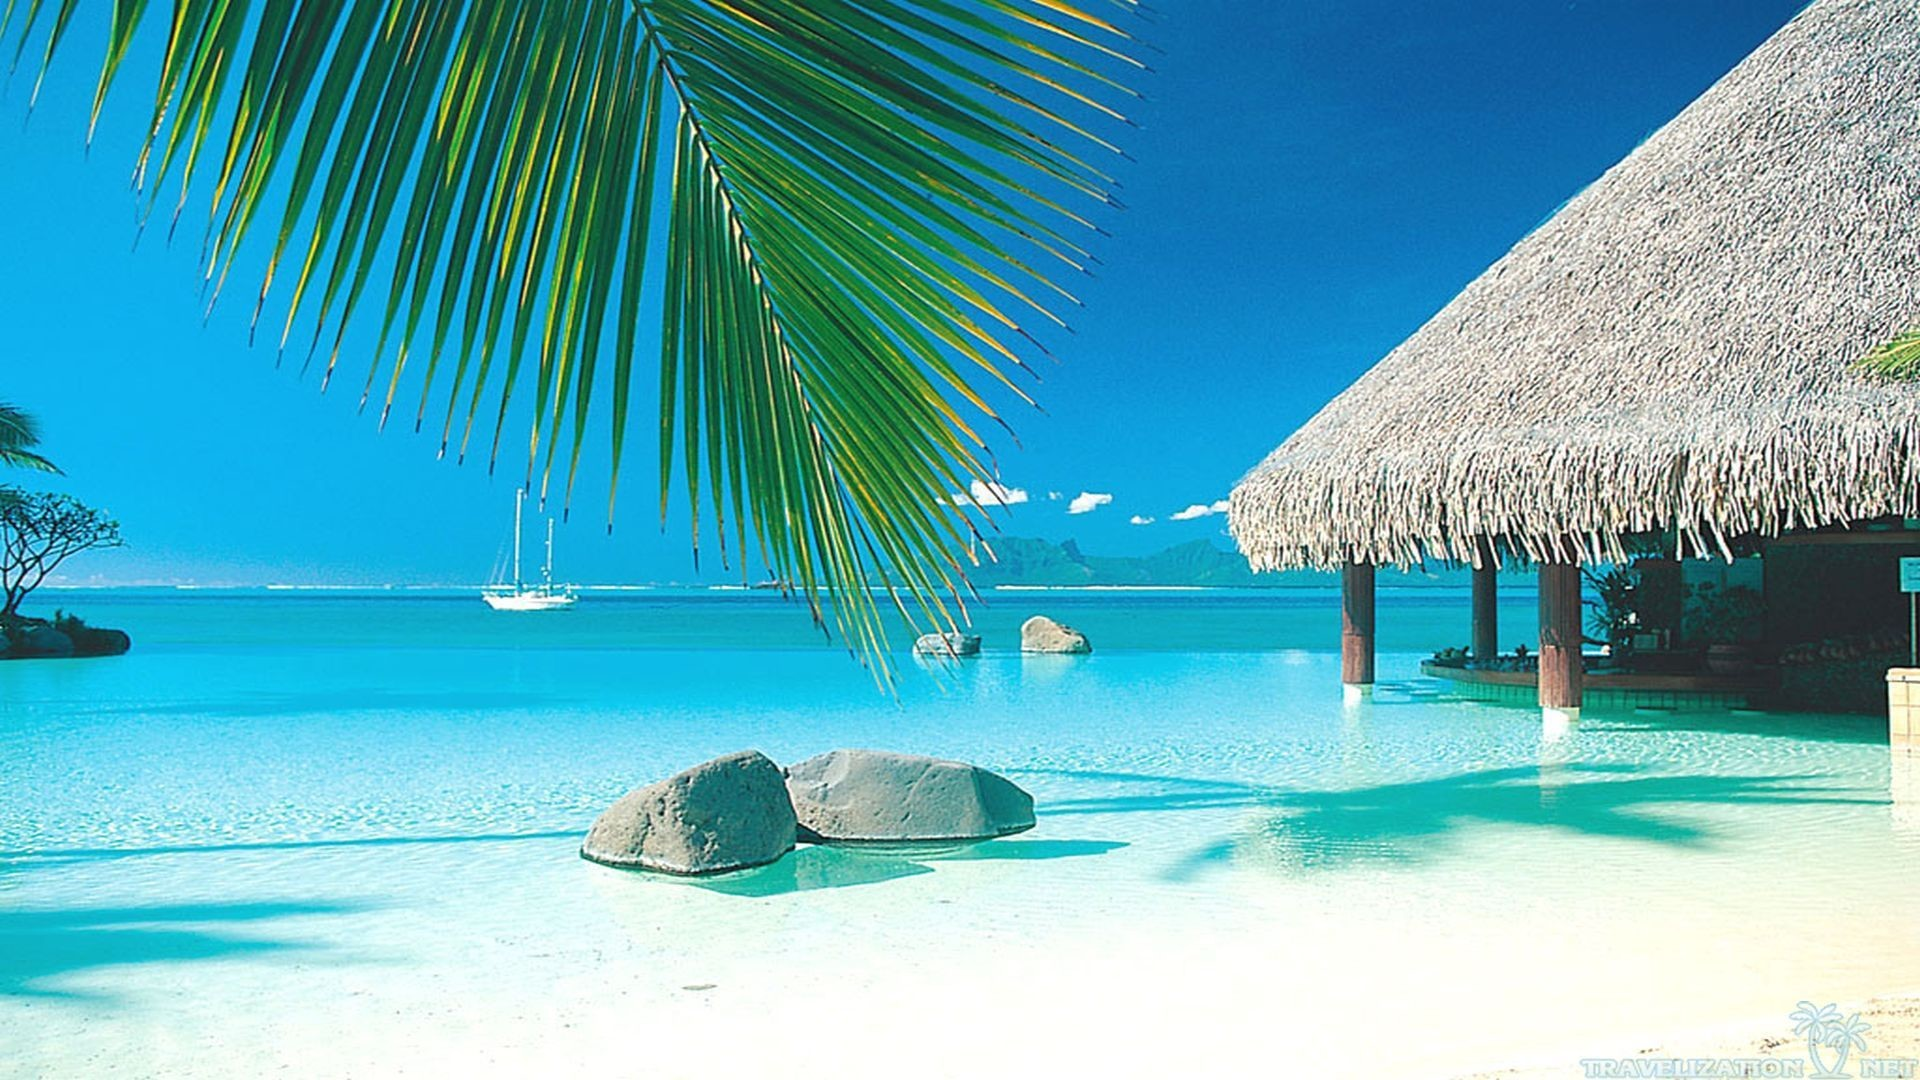 10 Best Tropical Beach Desktop Backgrounds Full Hd 1920: Tropical Beach Screensavers And Wallpaper (67+ Images